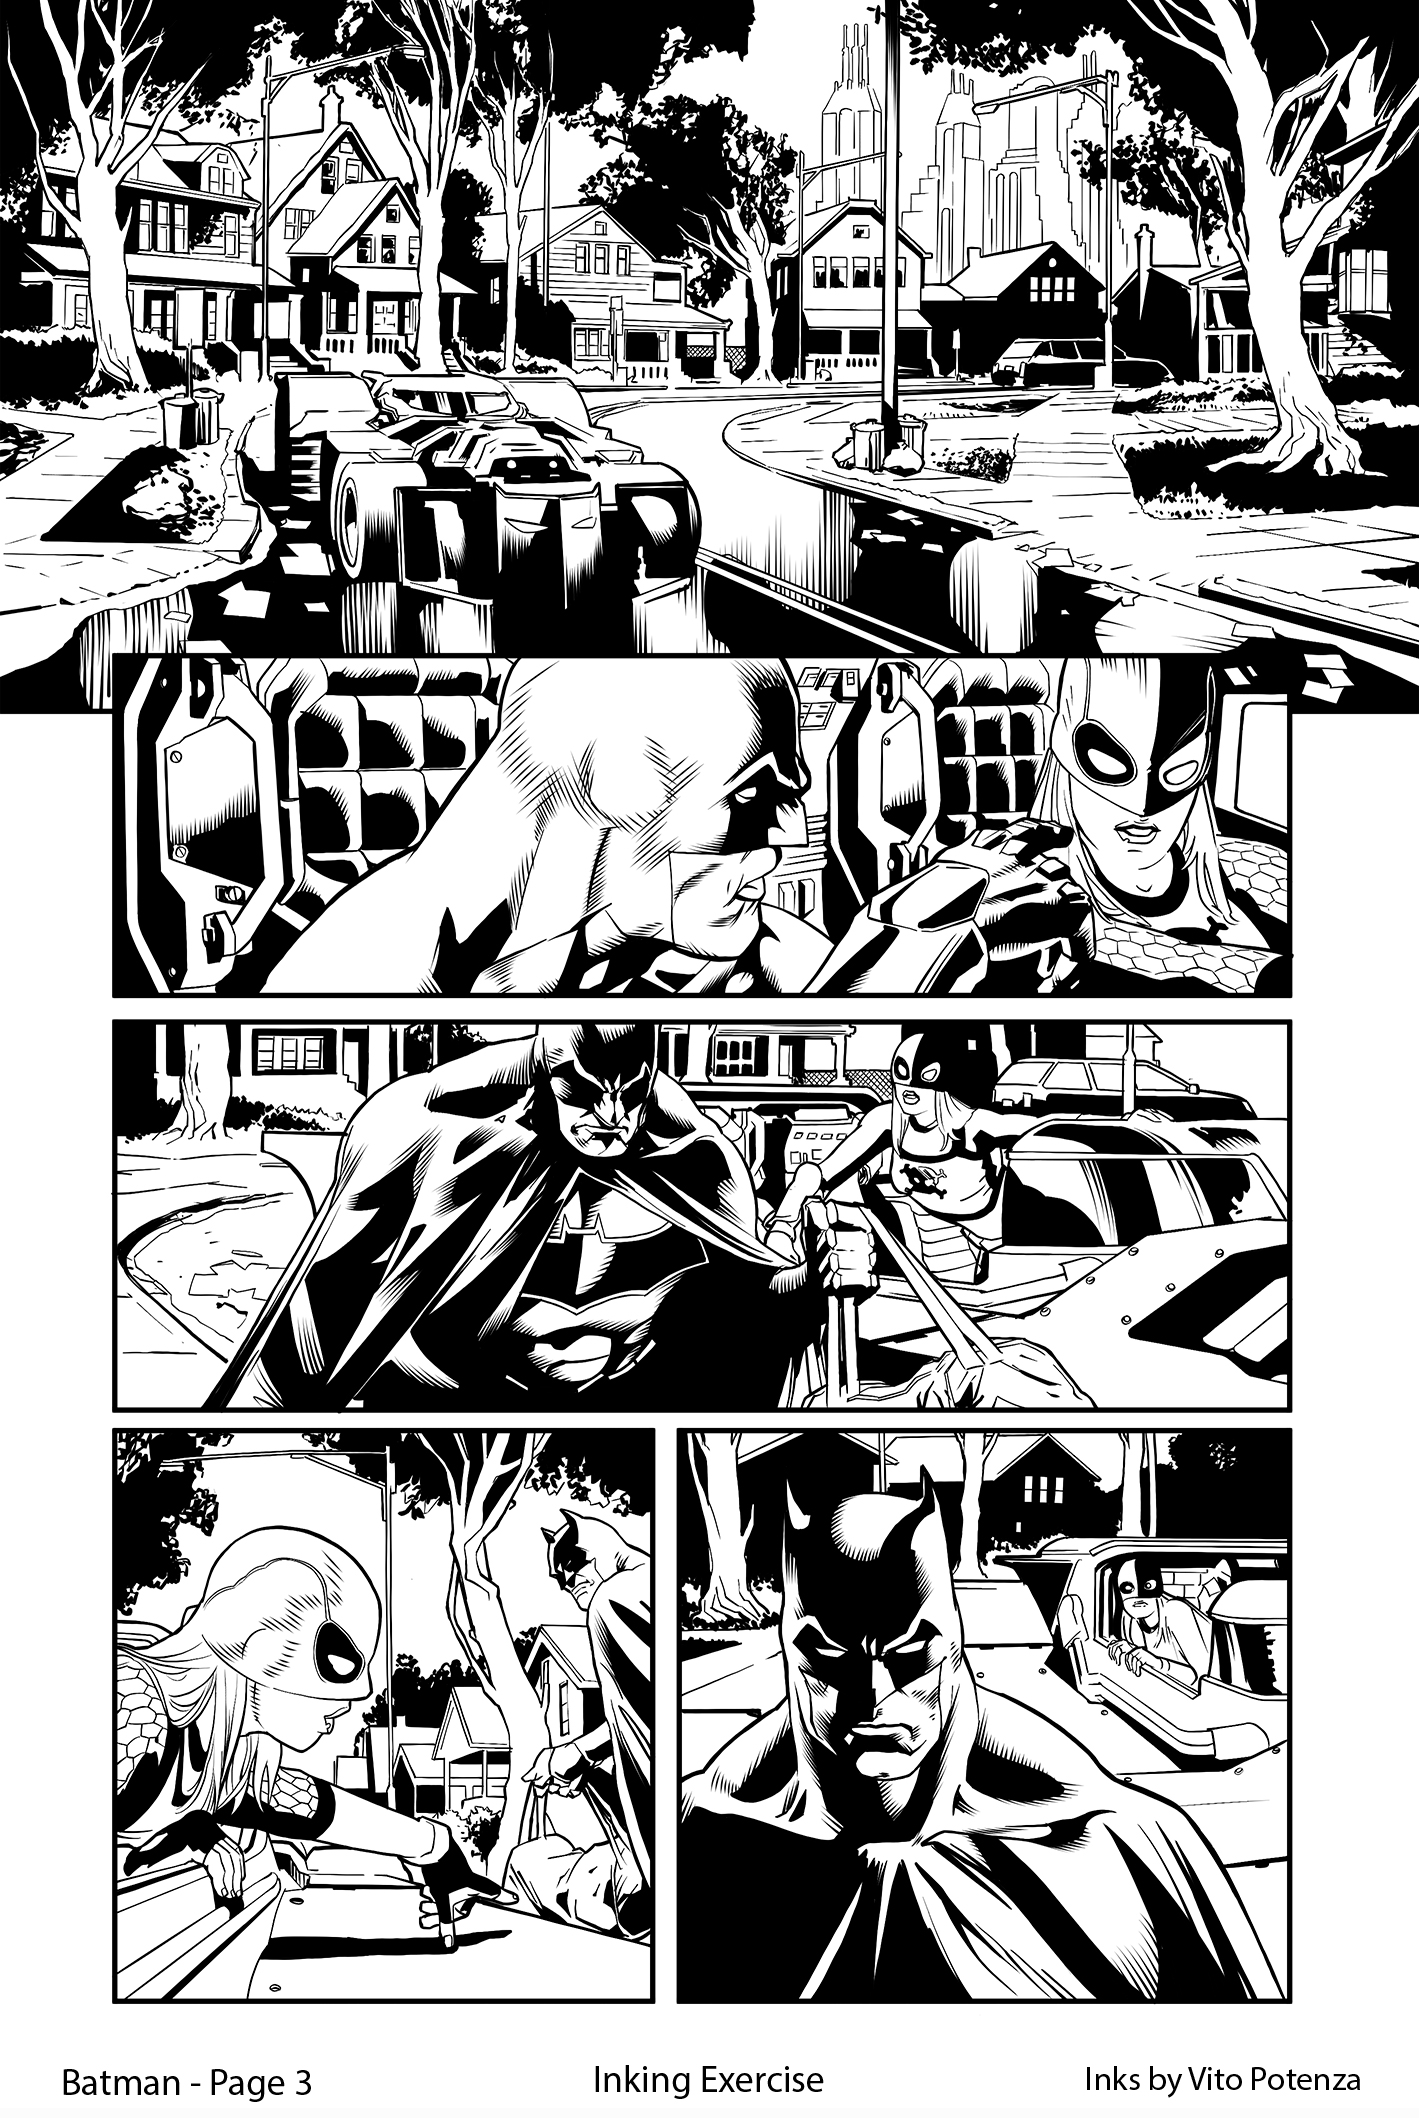 Batman, Page 3 – Inking Exercise